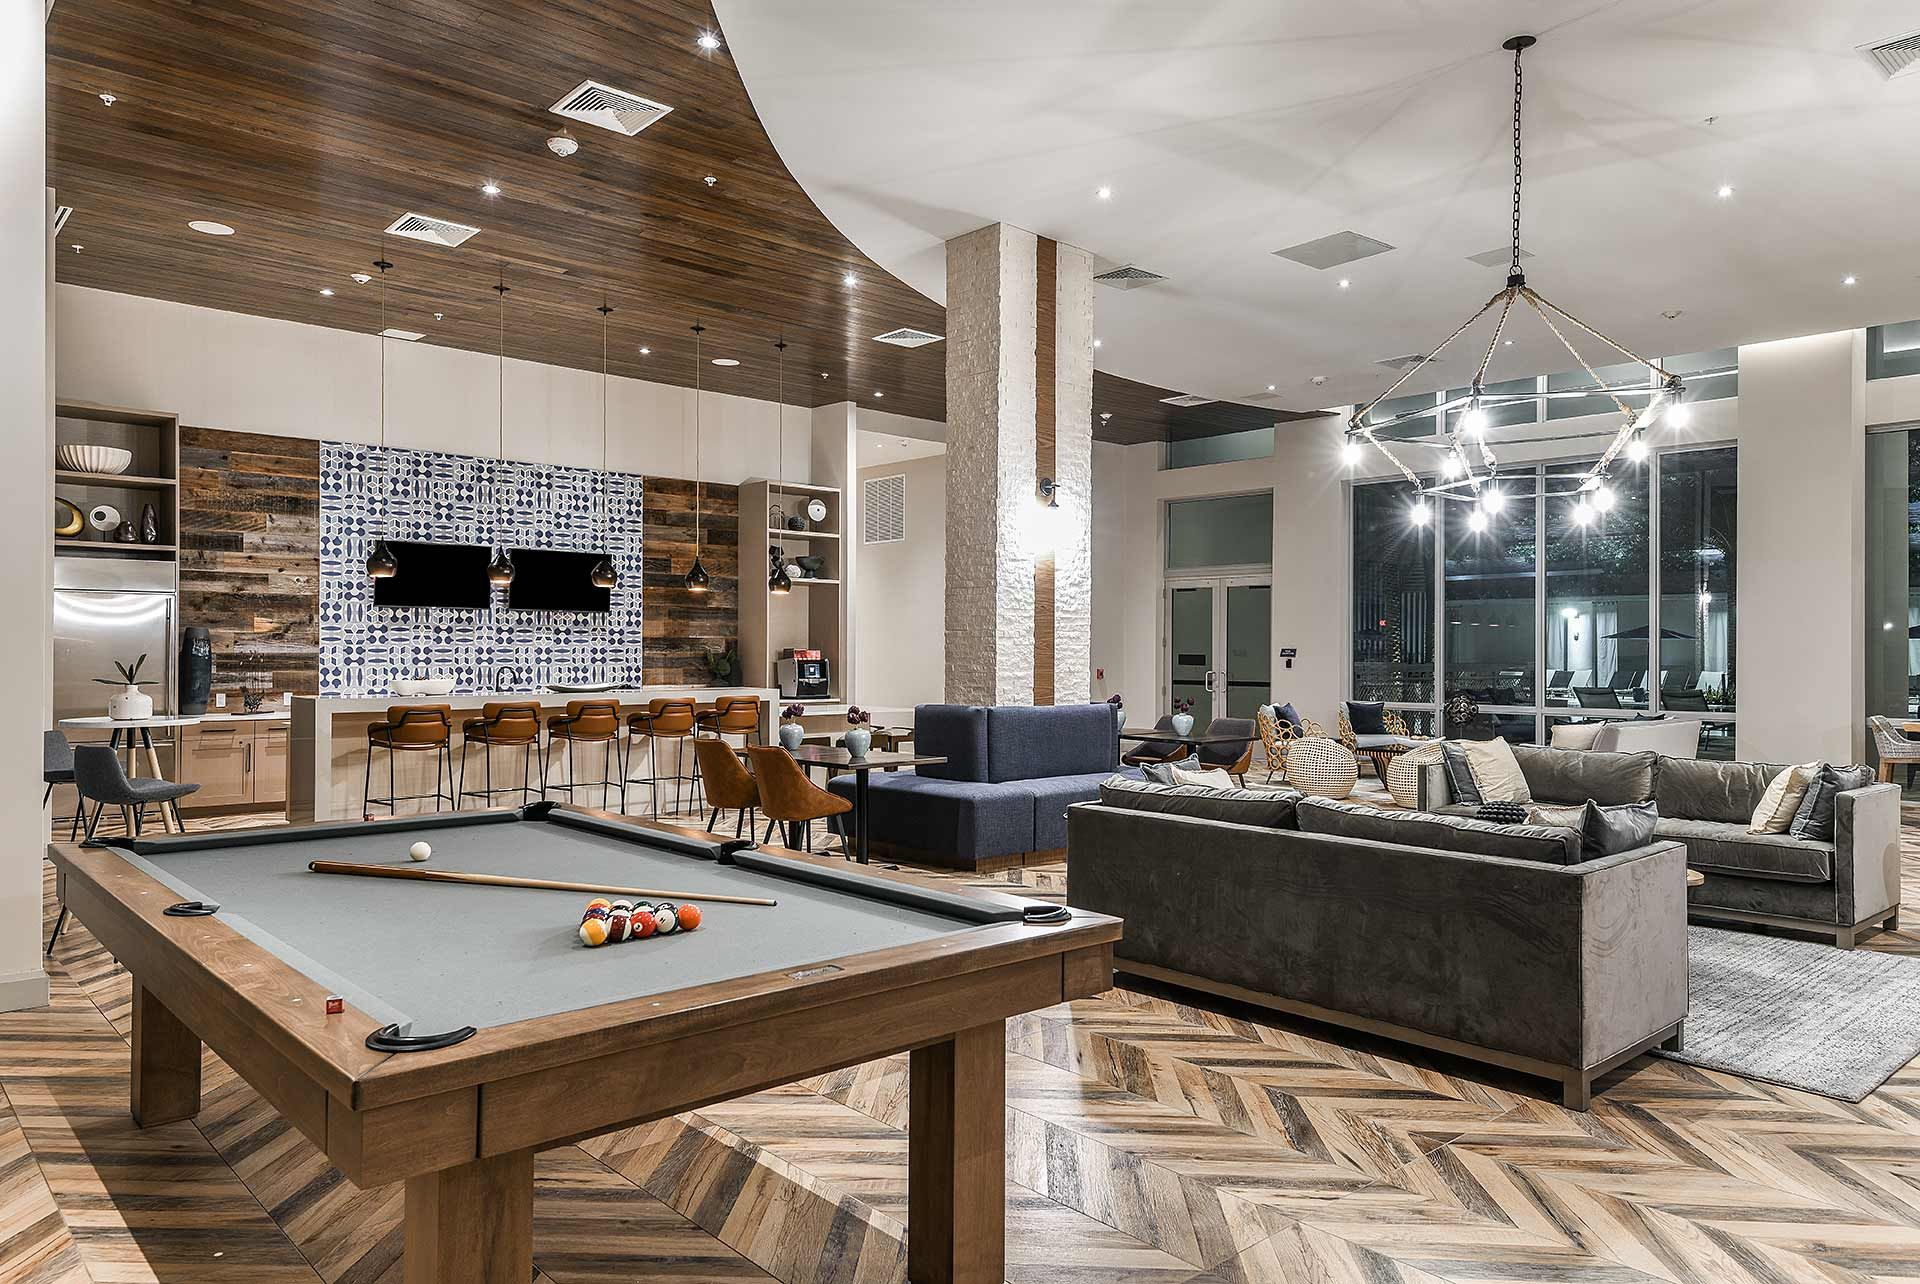 Clubhouse with seating and pool table